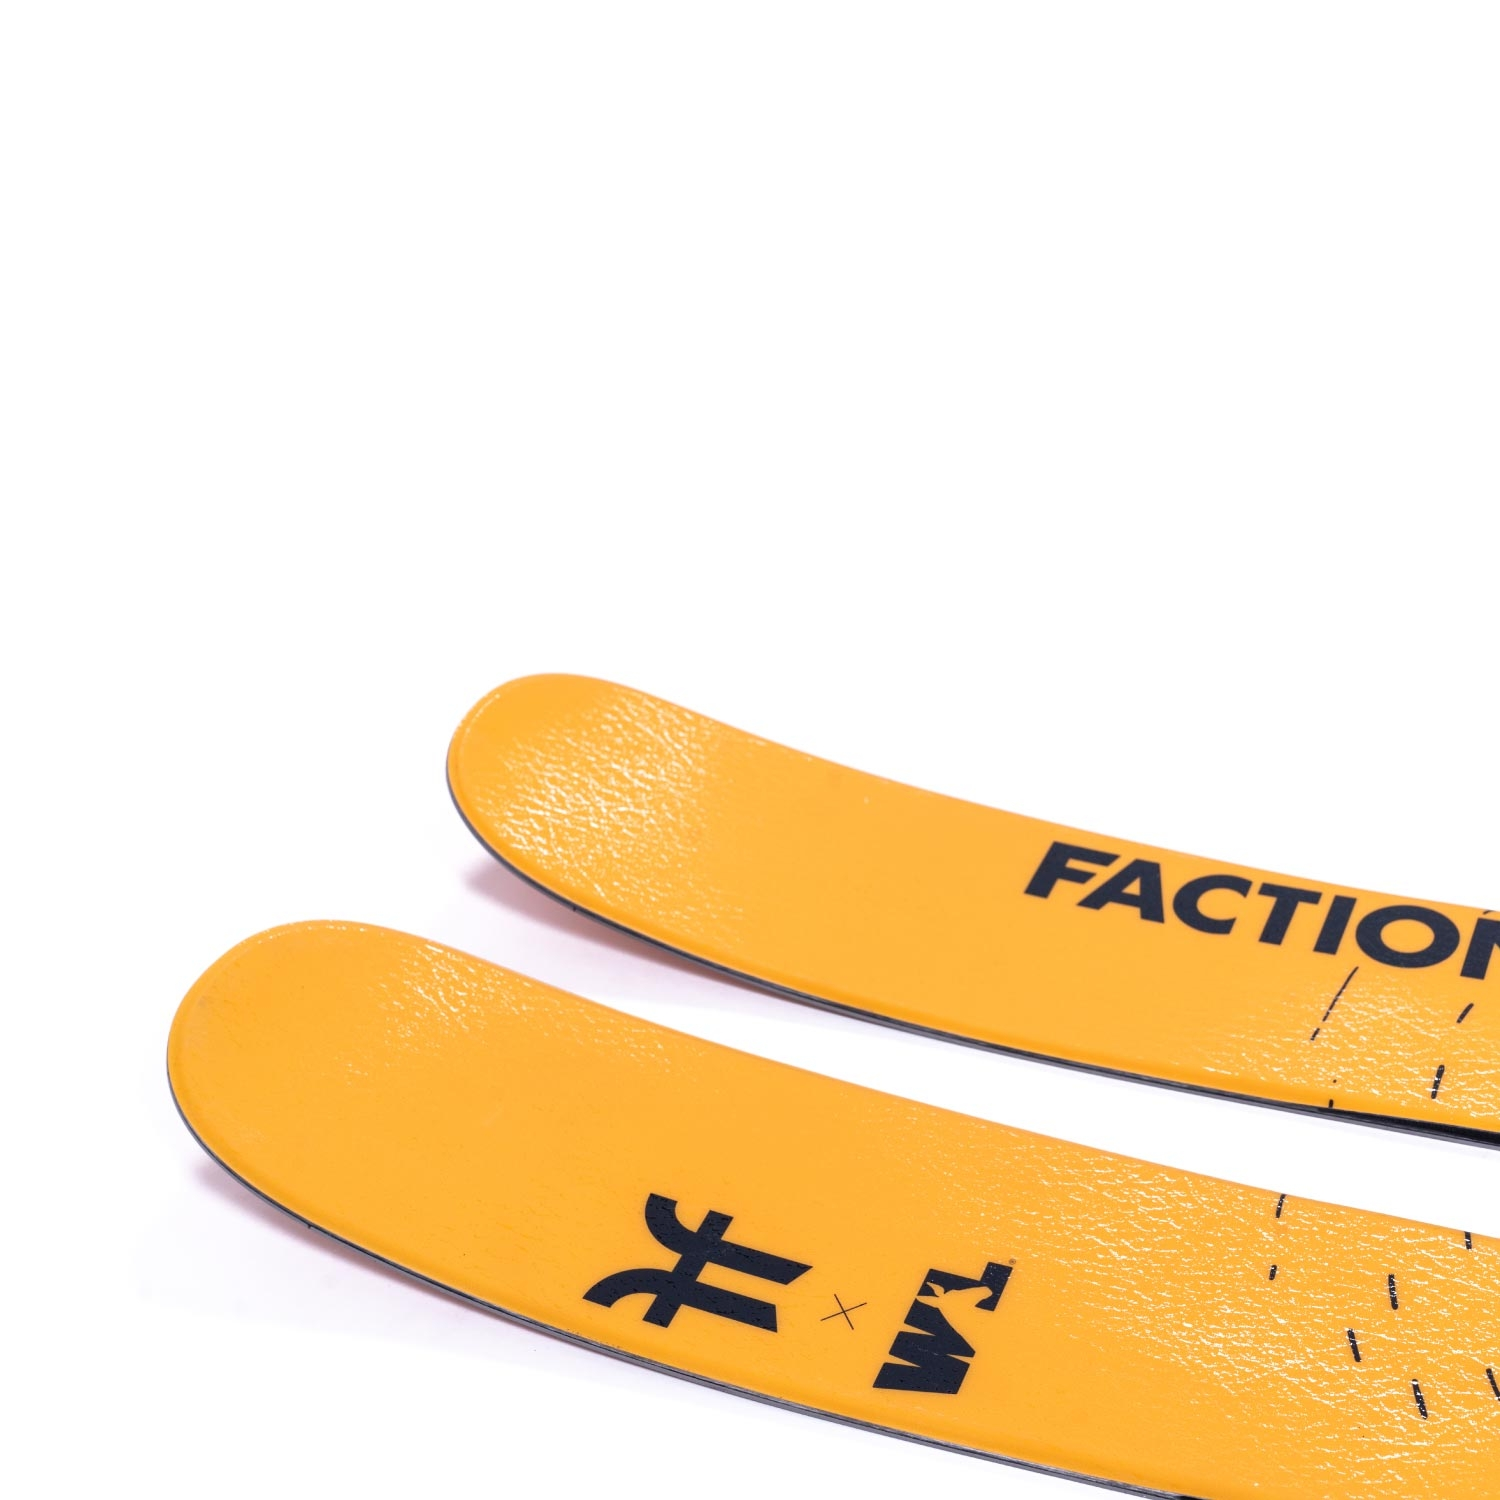 Faction Prodigy 2 0 Wells Lamont Collab Skis 2021